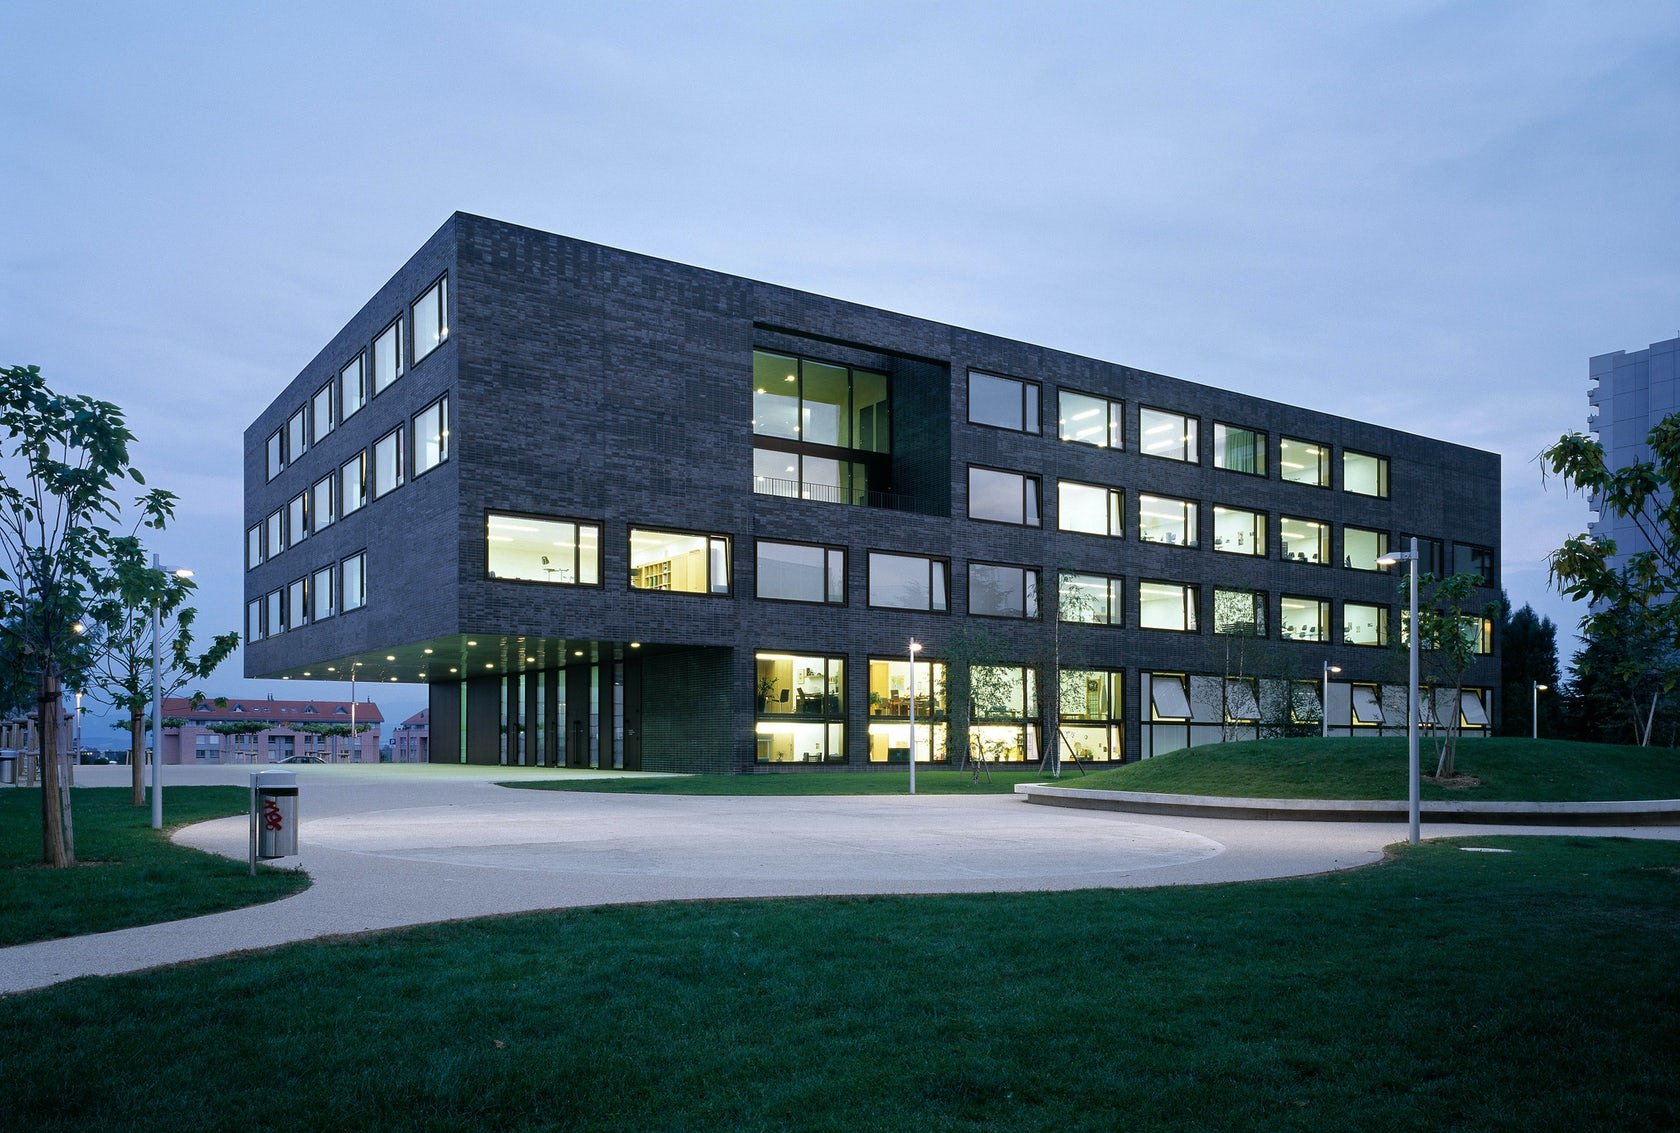 Secondary School Les Tuillieres - reinforced concrete structure